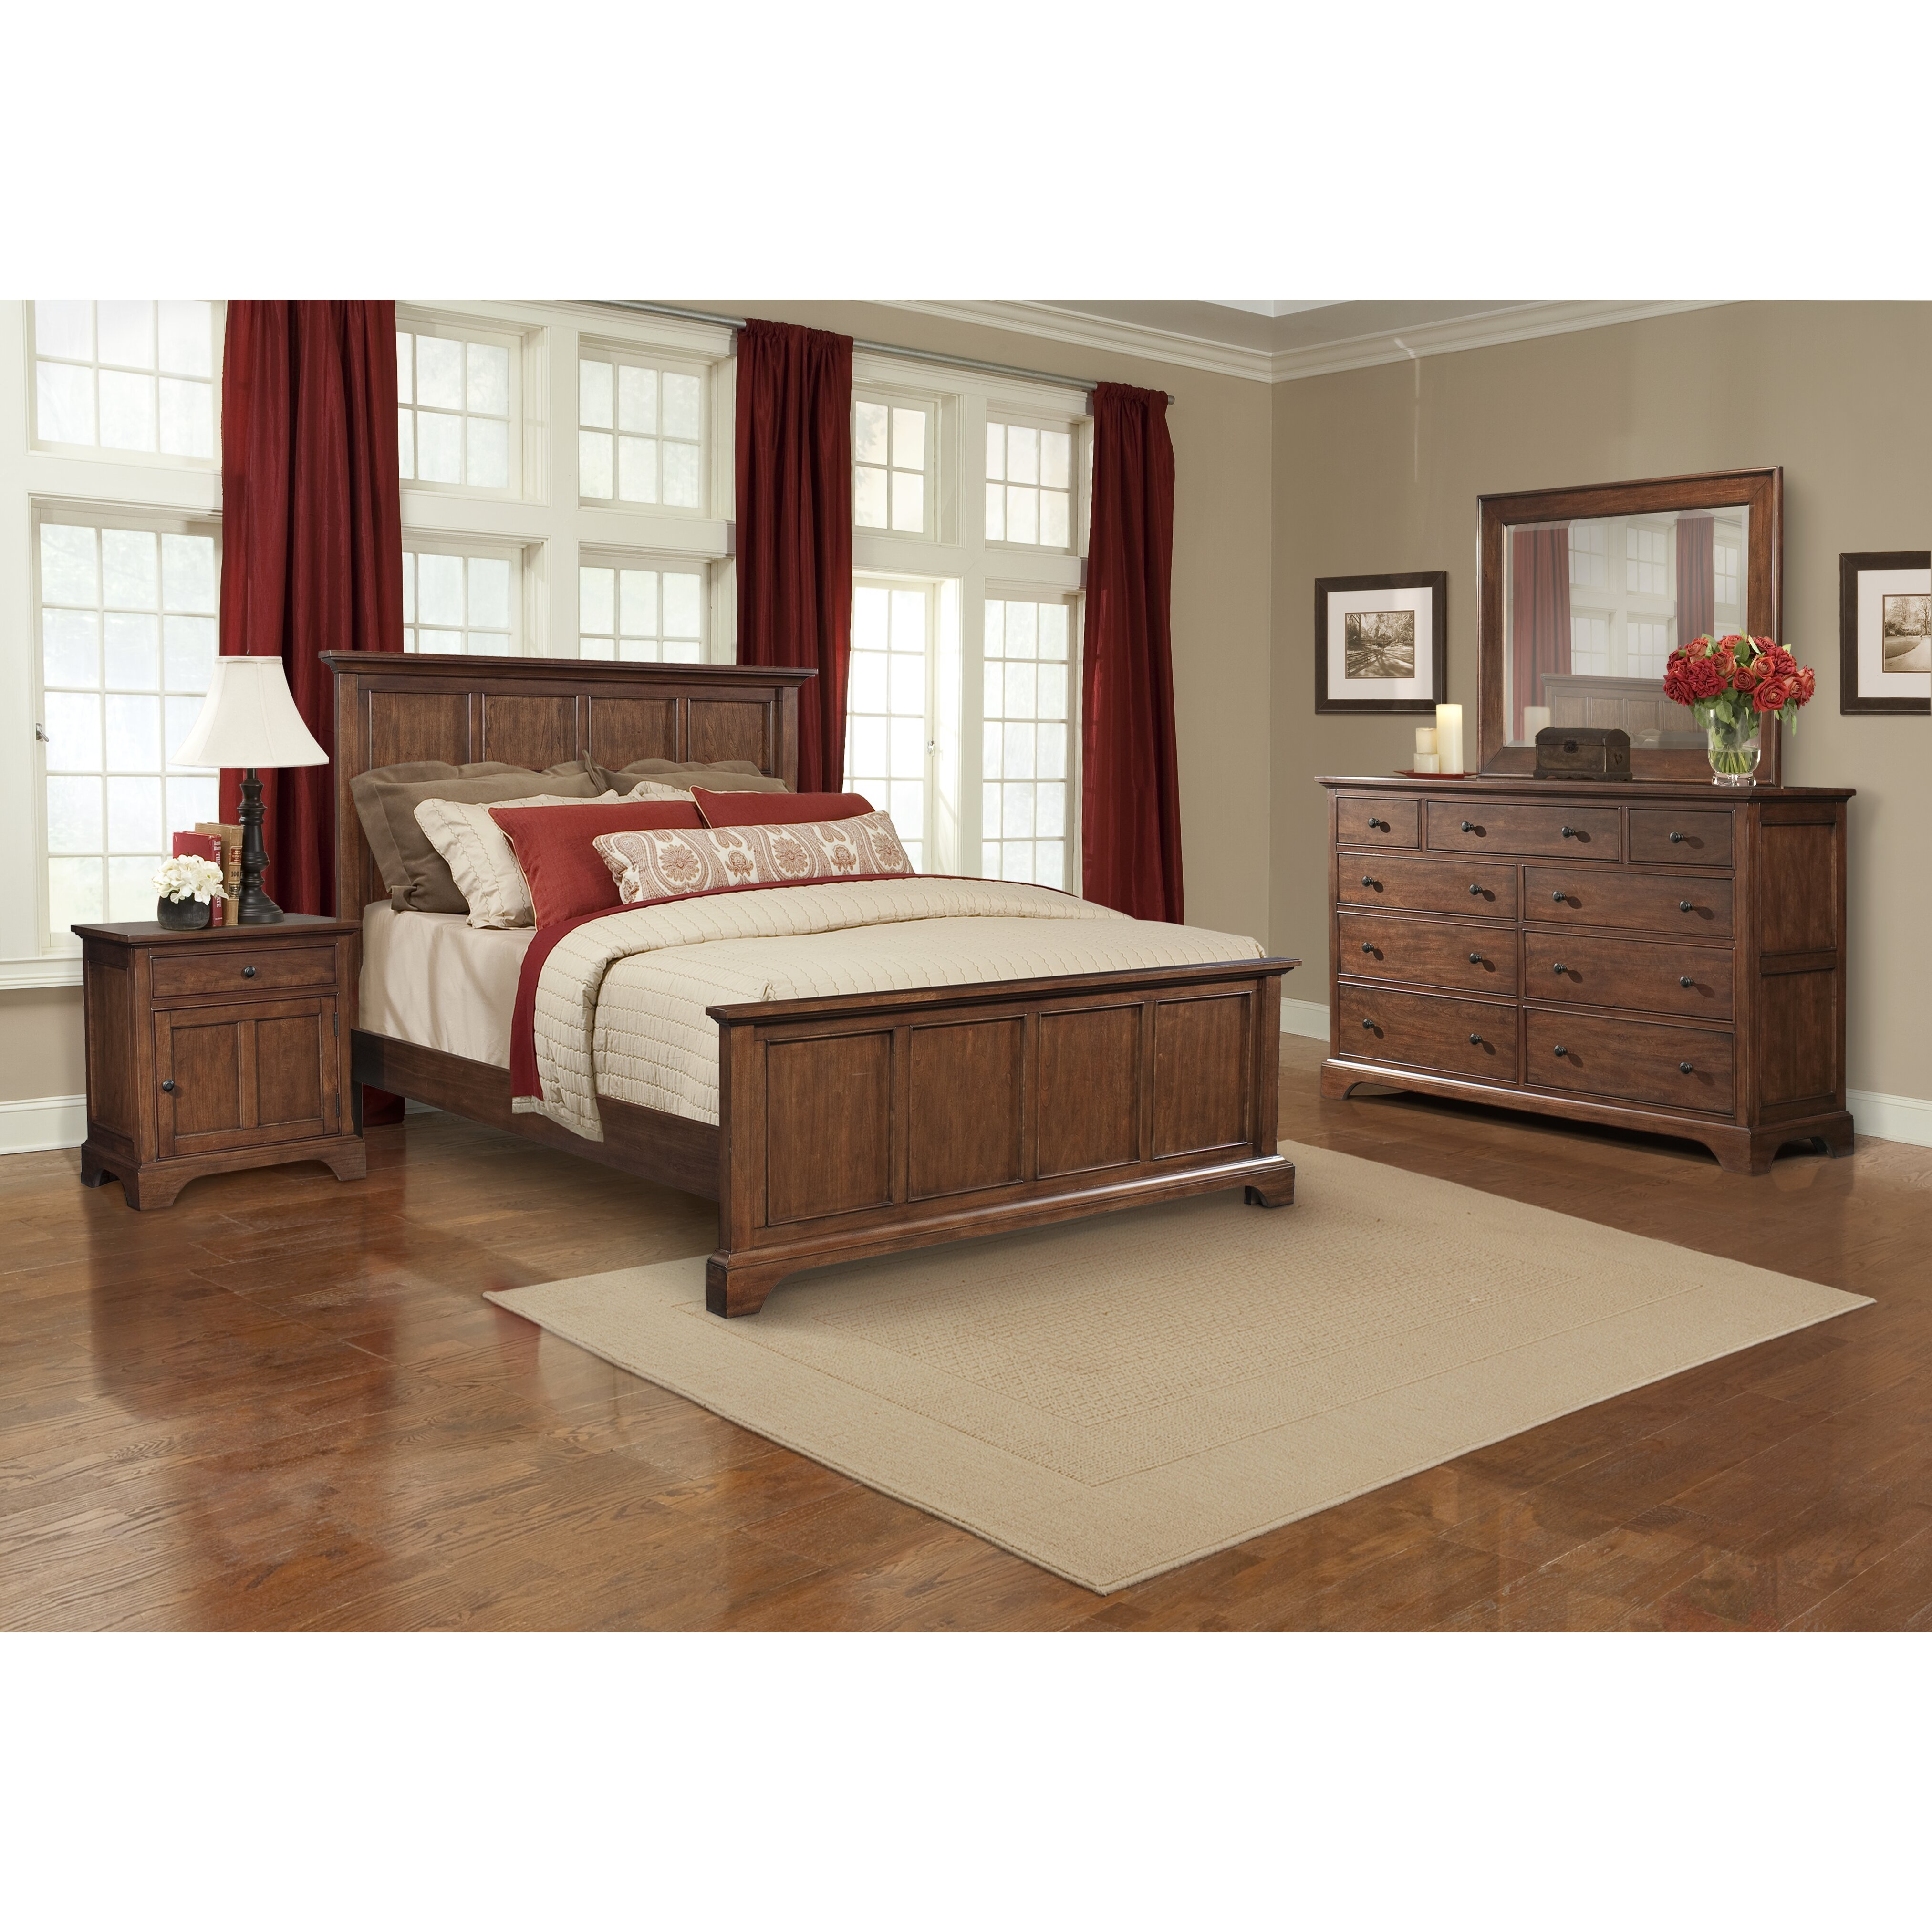 Cresent Furniture Retreat Cherry Queen Panel Customizable Bedroom Set Reviews Wayfair